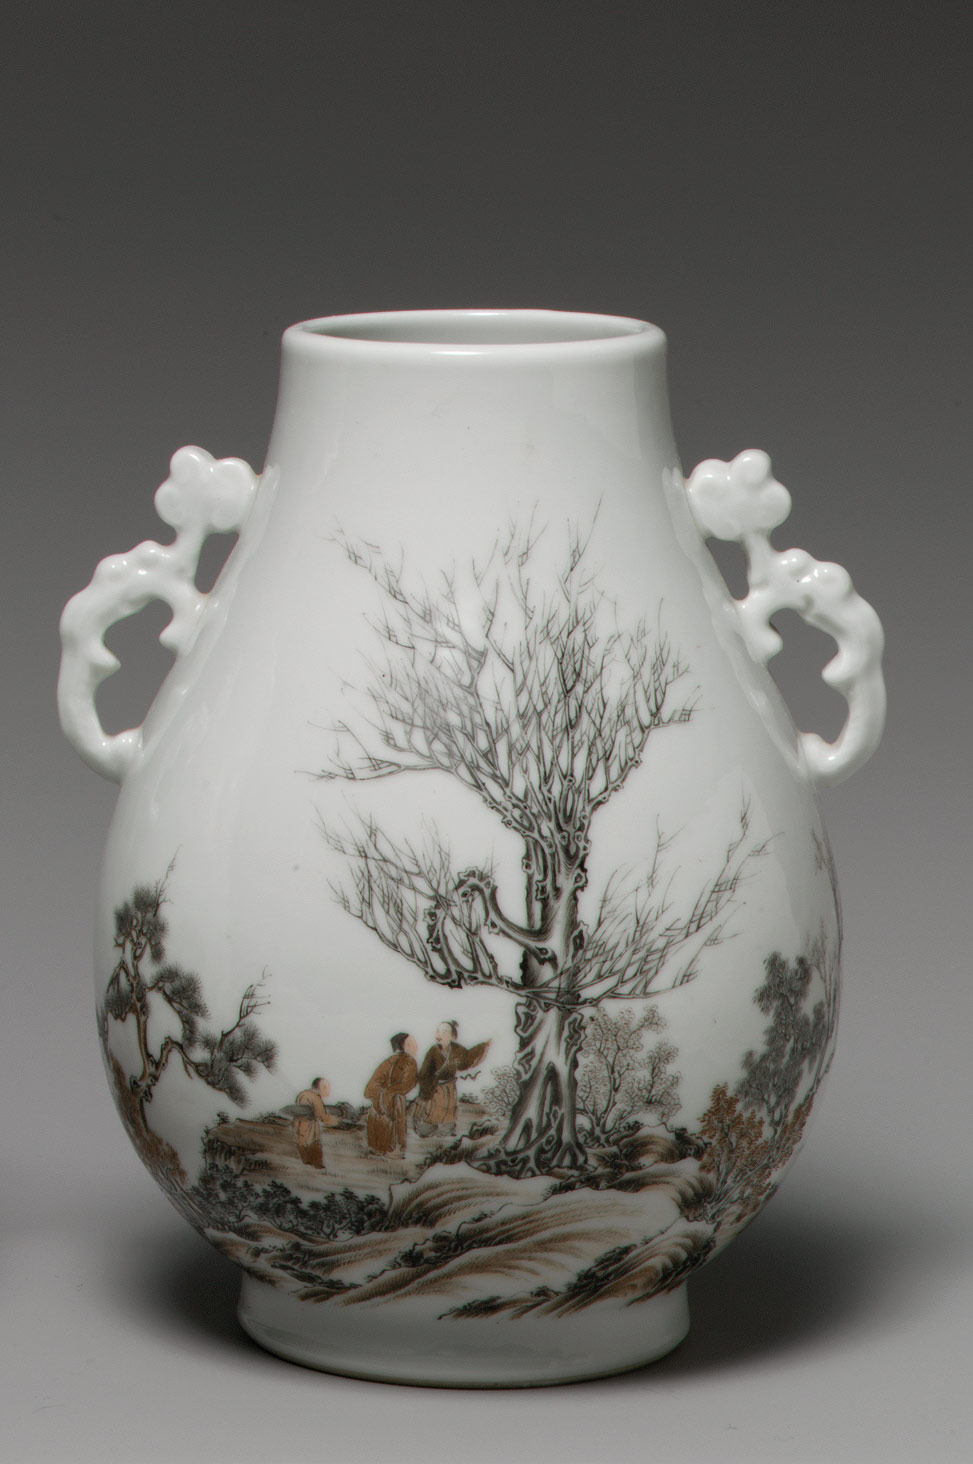 Vase with Scholar in a Landscape (one of a pair)